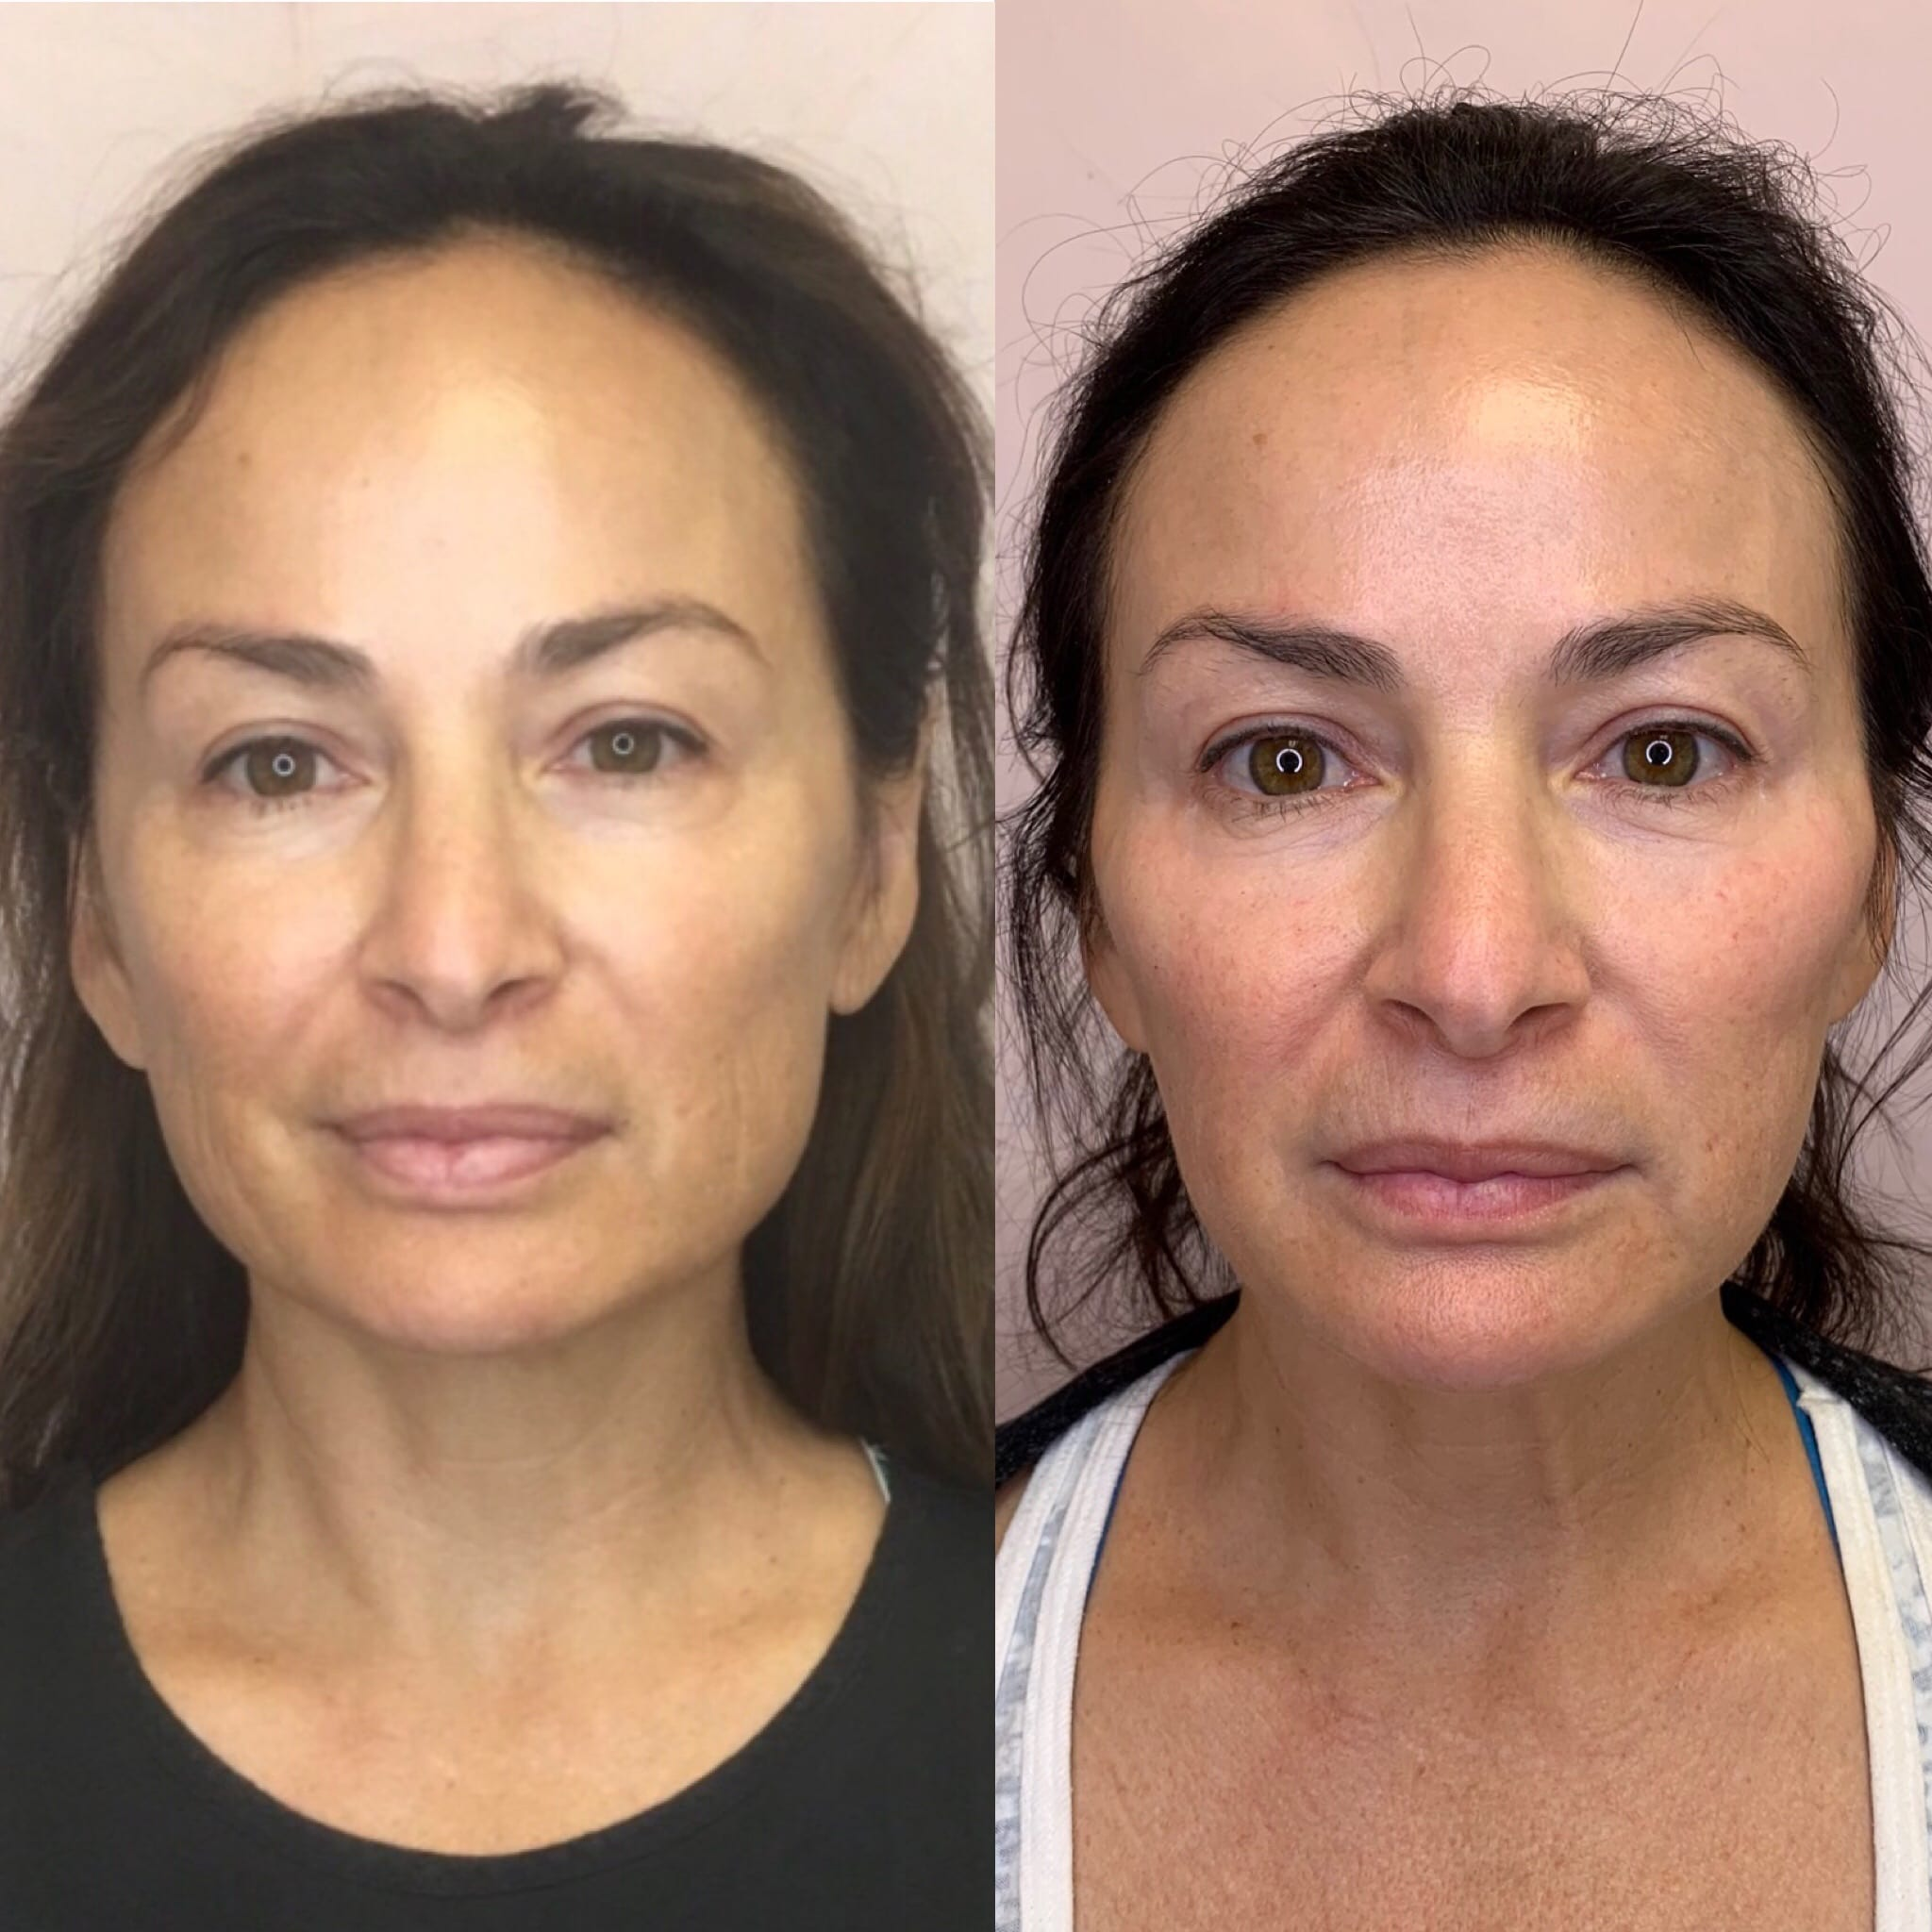 53 y/o Caucasian F 3 months after receiving 40 units of botox to her masseters for jawline slimming and facial reshaping.